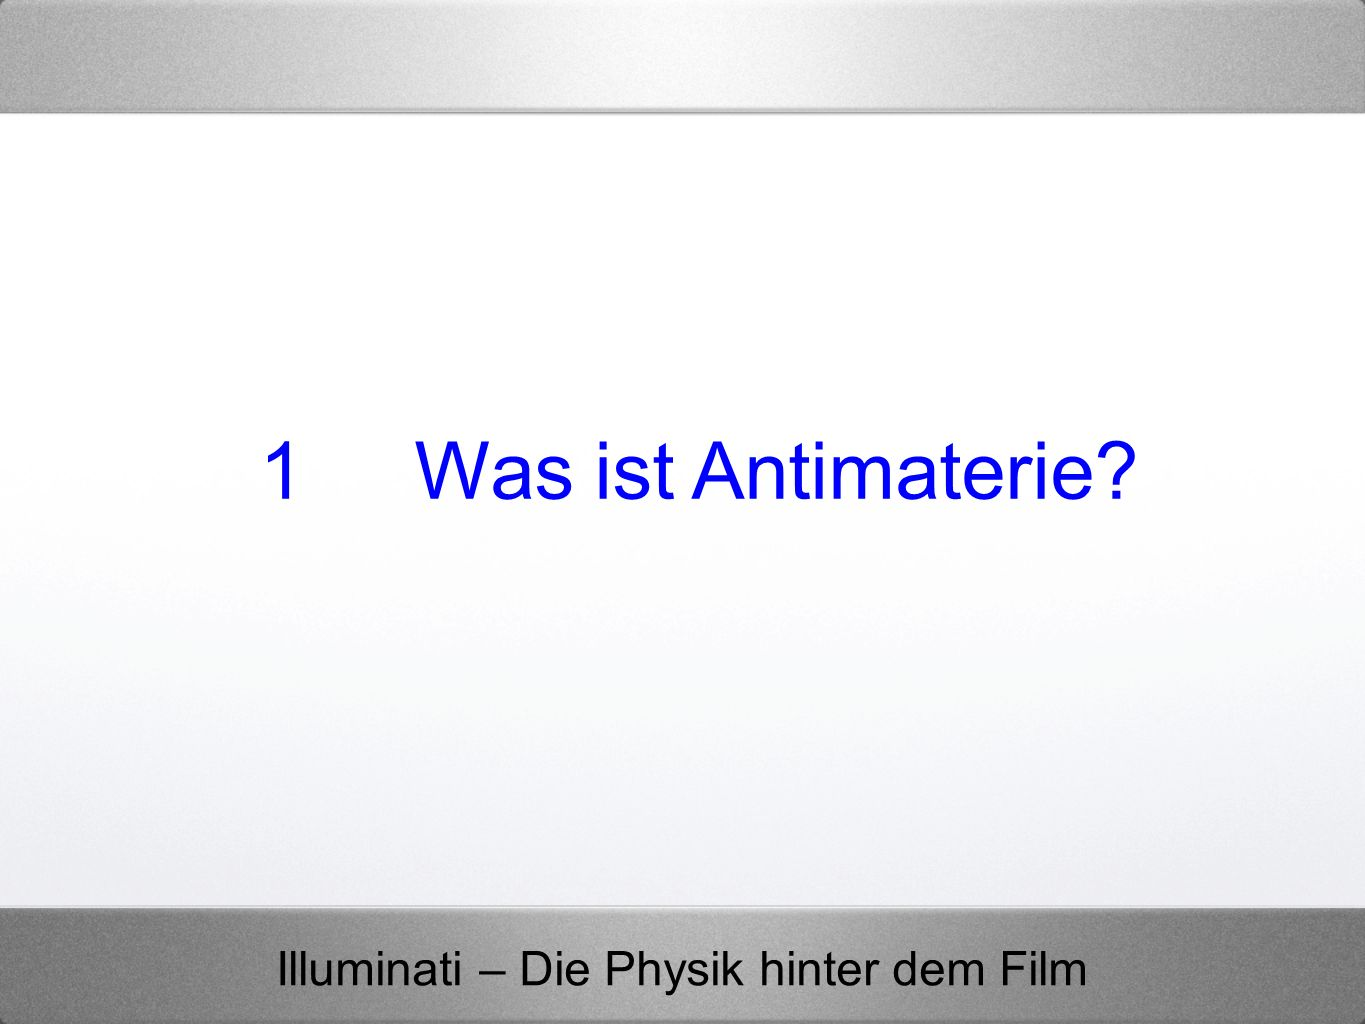 1 Was ist Antimaterie